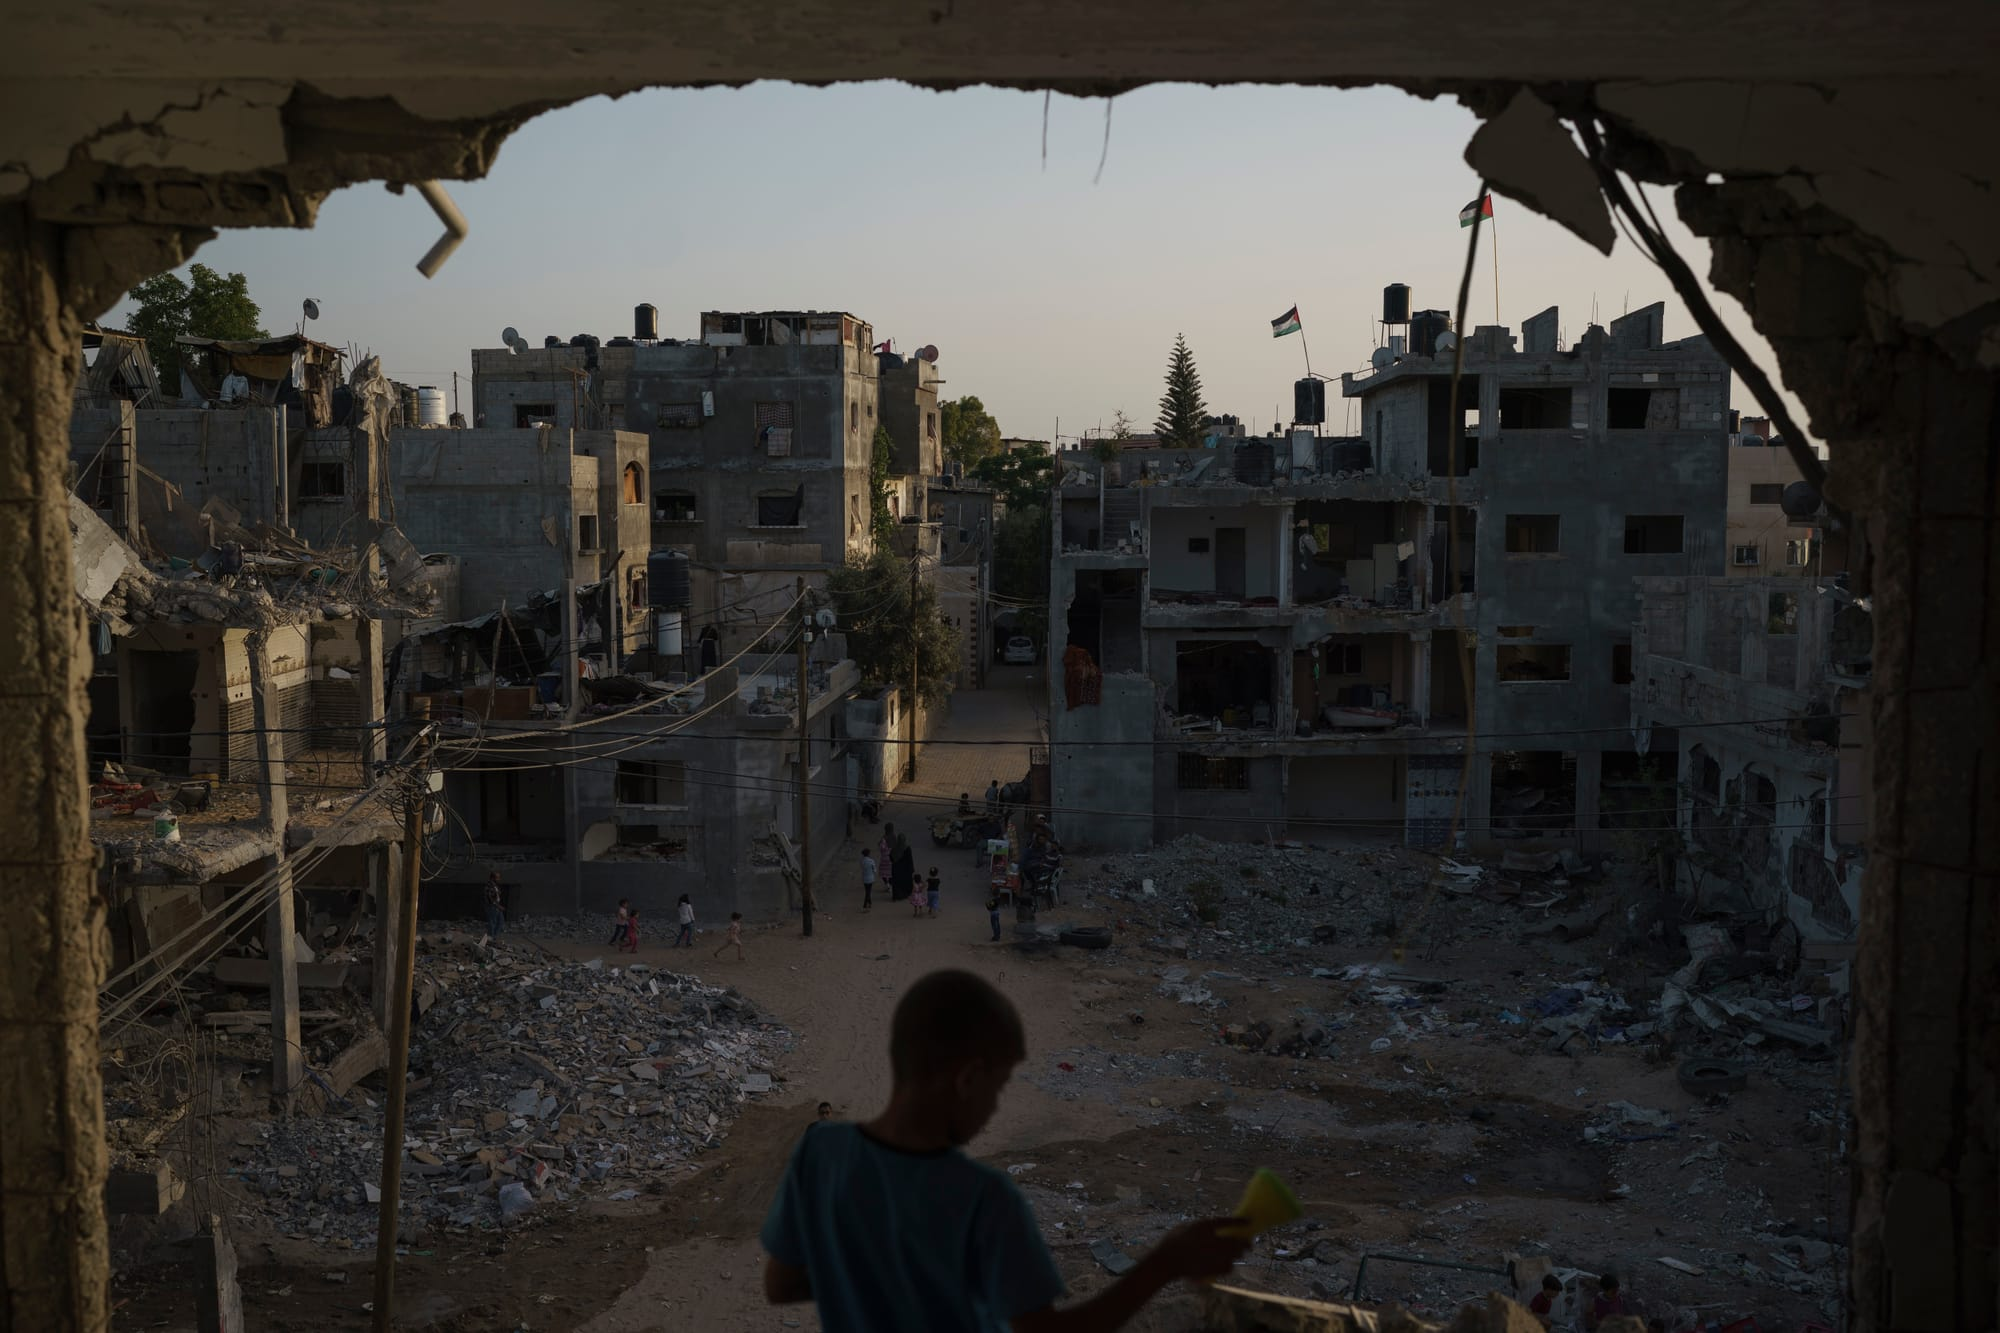 A young boy looks out from his home in Gaza that had been heavily damaged by airstrikes during a war between Gaza's Hamas rulers and Israel. The two have fought four wars over the last 13 years.